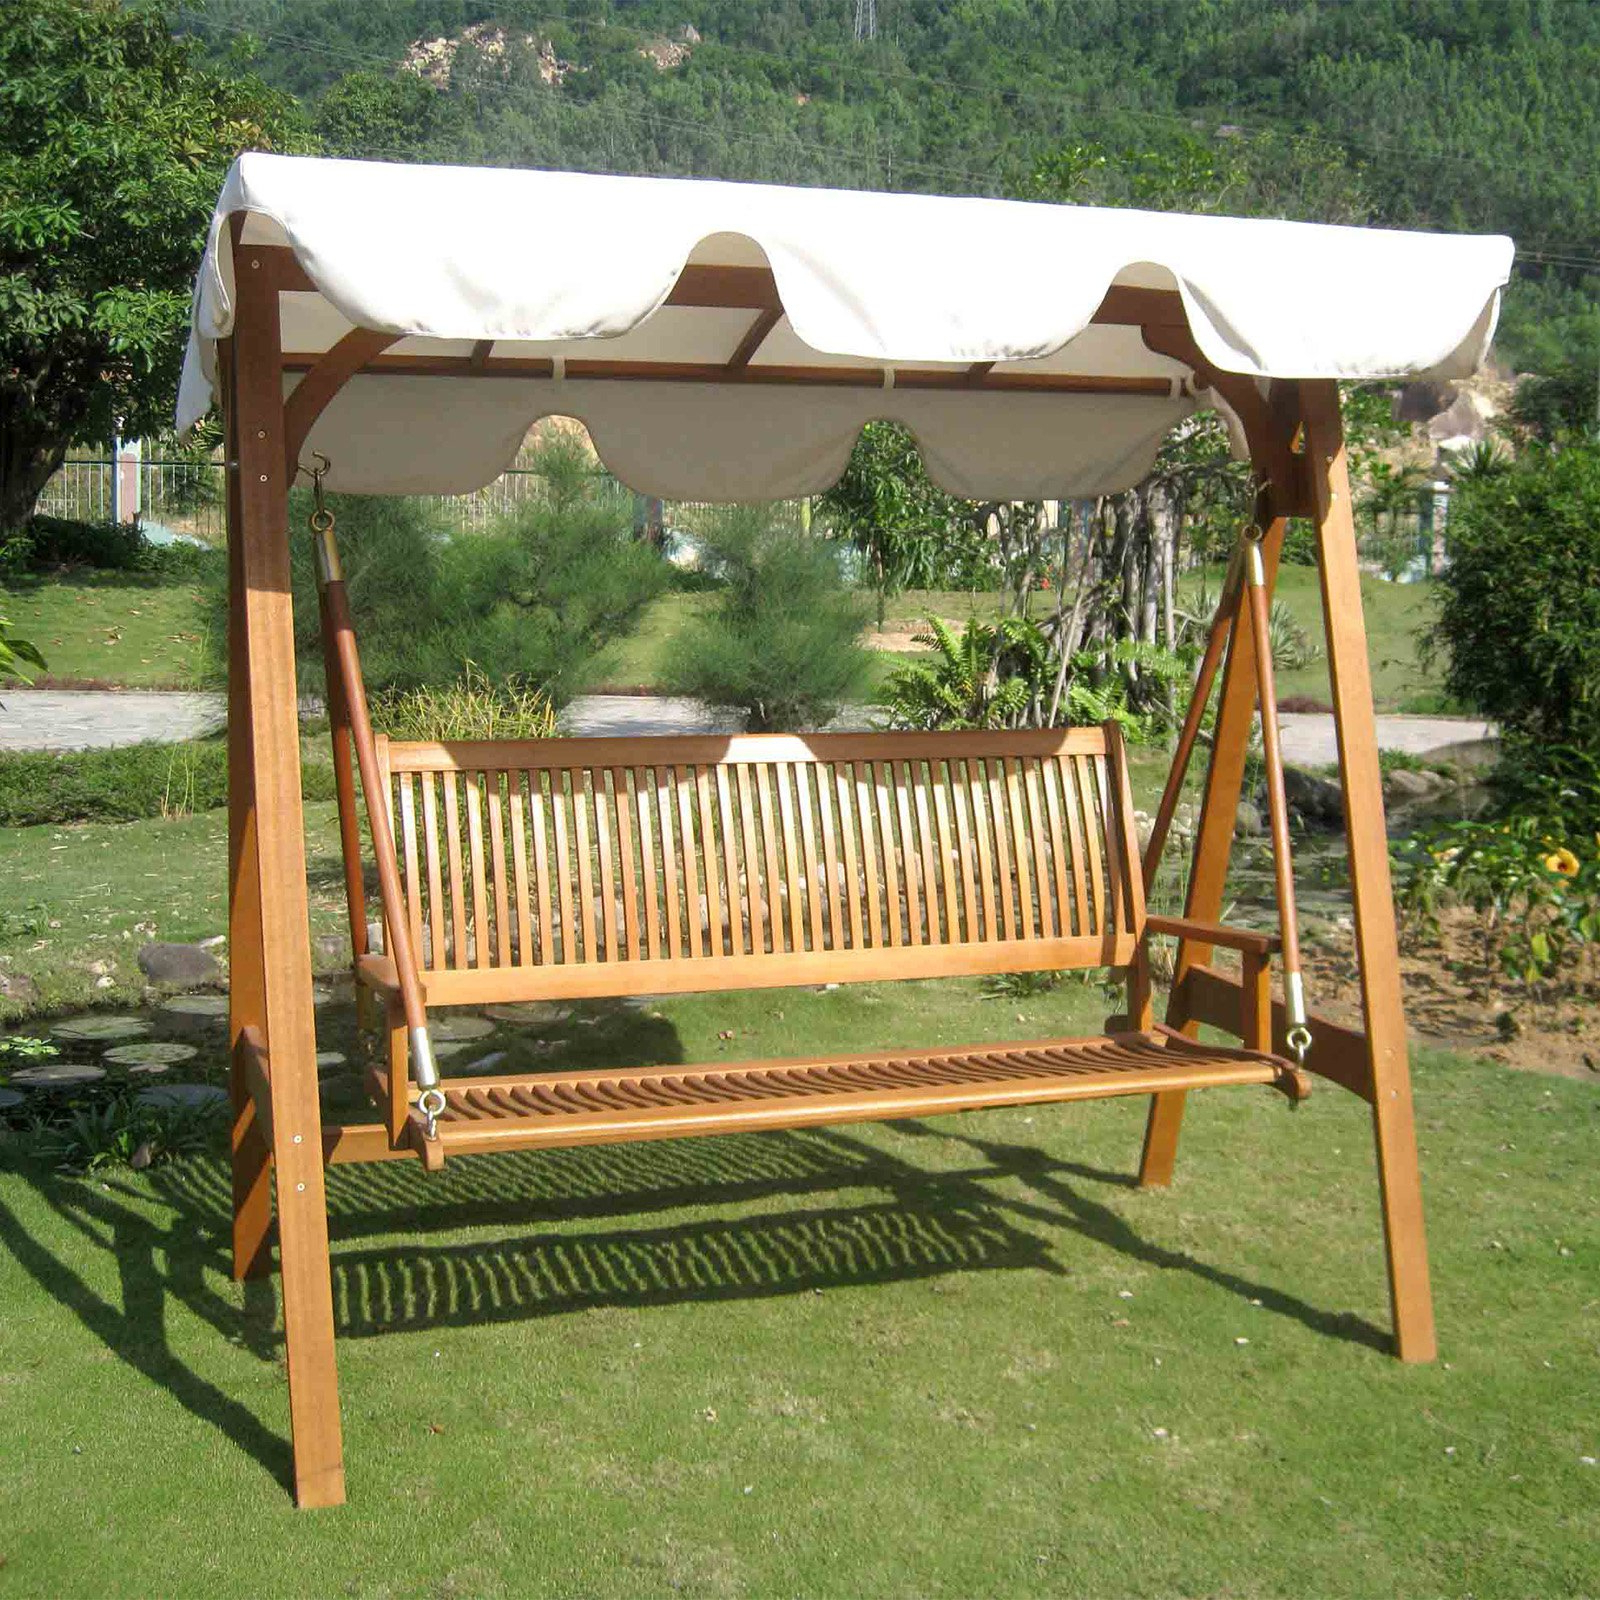 Most Recent Patio Porch Swings With Stand Within Hammock Patio Backyard Stand – Recognizealeader (View 22 of 25)